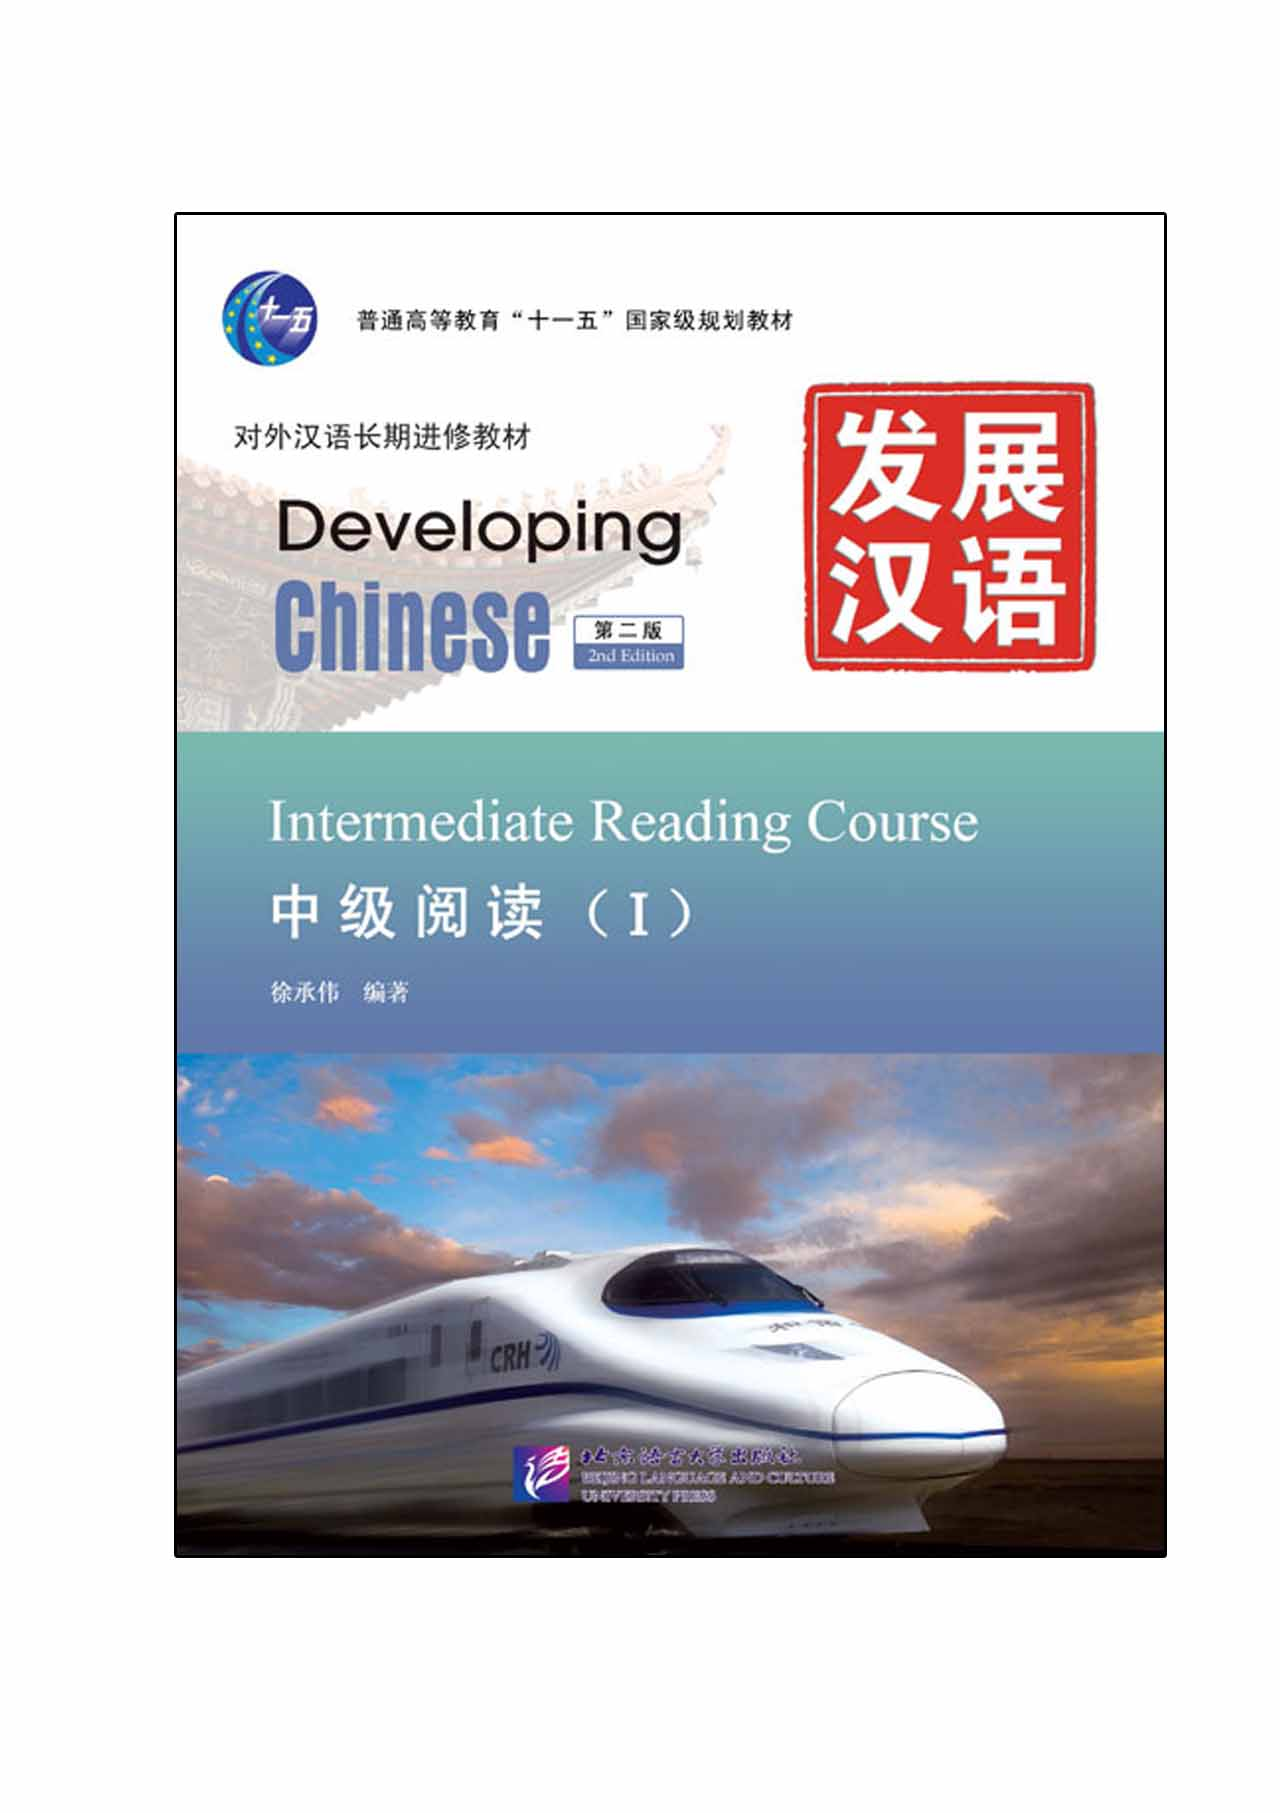 Developing Chinese (2nd Edition) Intermediate Reading Course Ⅰ发展汉语(第2版)中级阅读(Ⅰ)